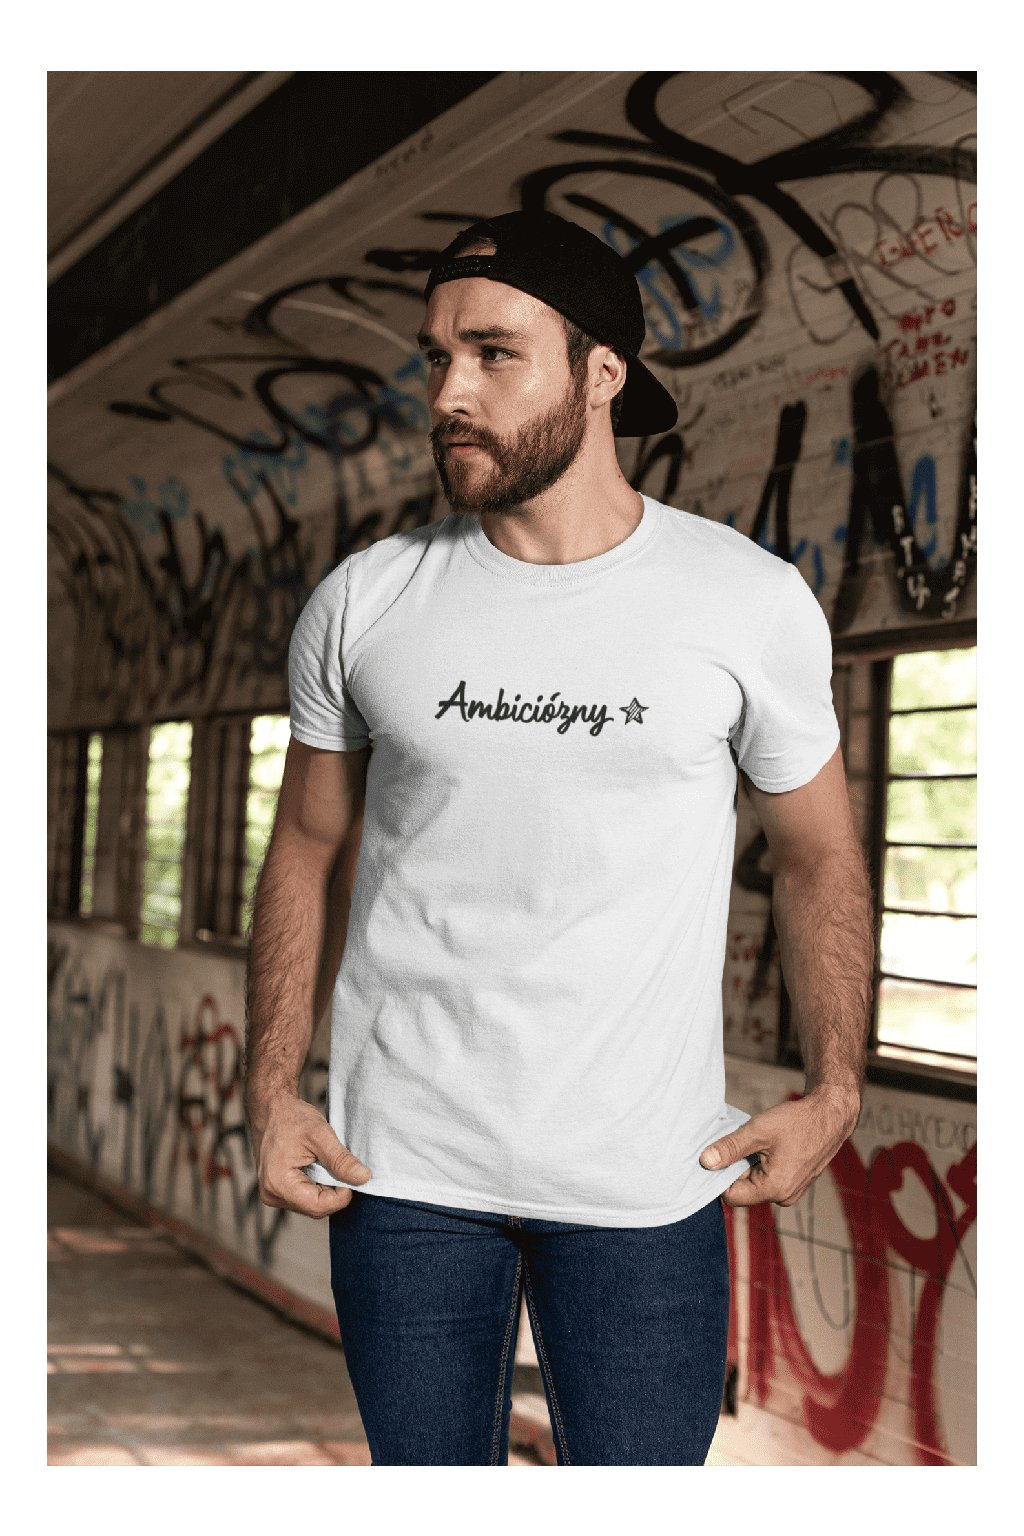 t shirt mockup featuring a bearded man with a cap by a graffiti wall 28194 (4)